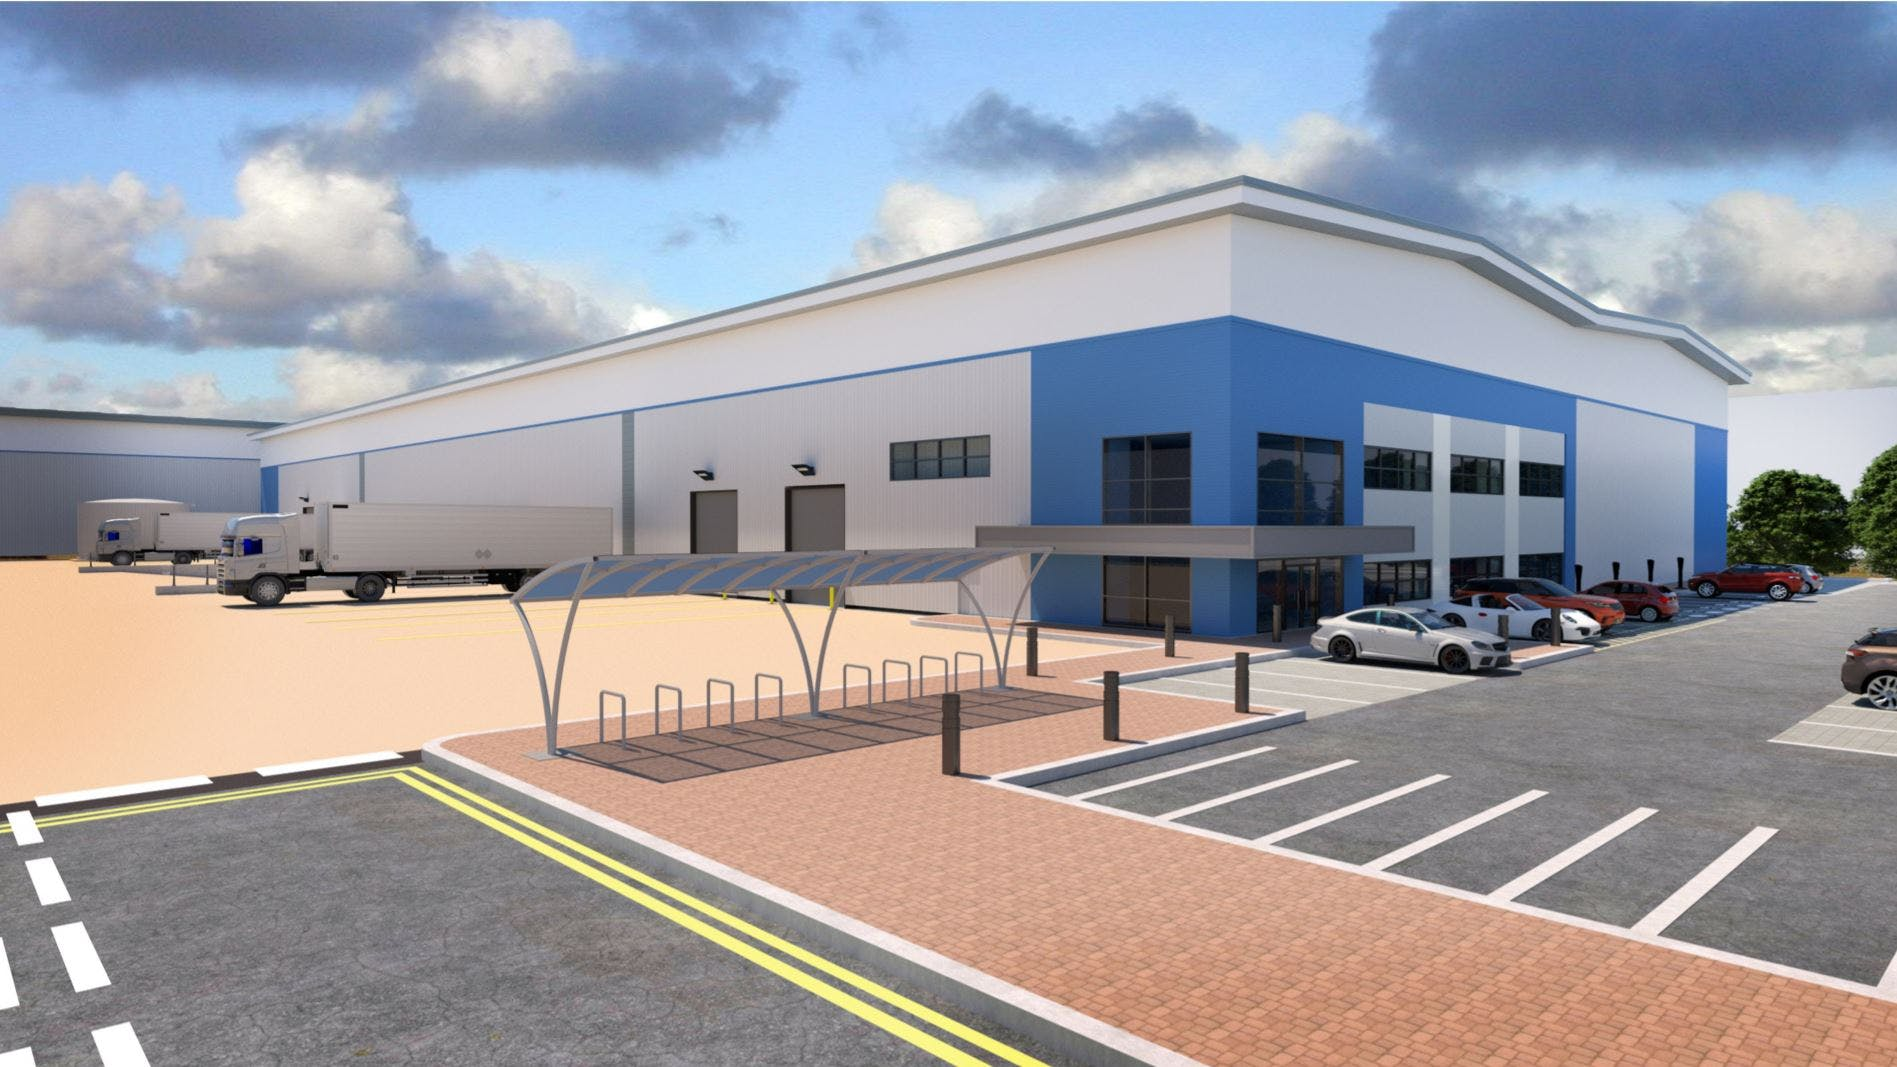 LEDP, Leicester, Distribution Warehouse To Let - Image 2.JPG